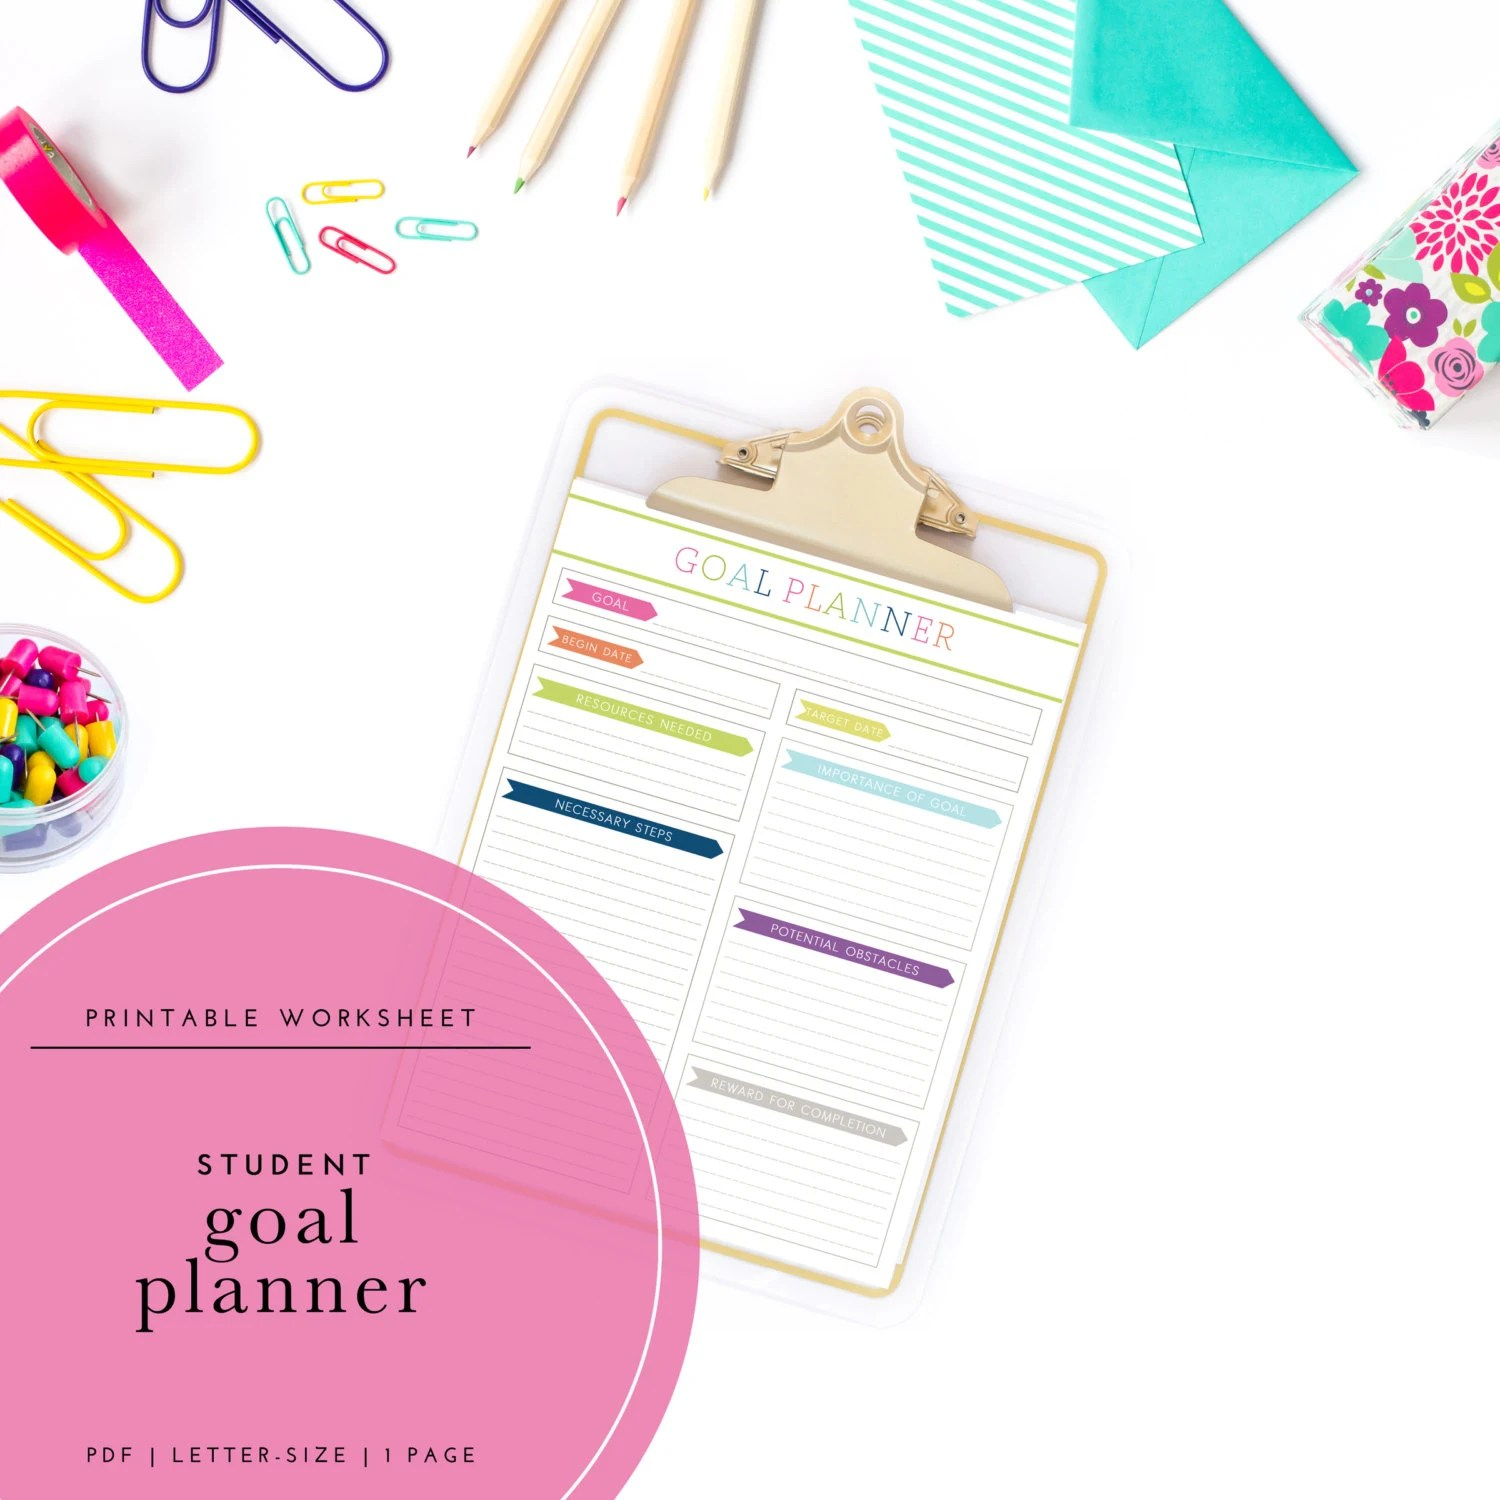 Printable Student Goal Planner Worksheet